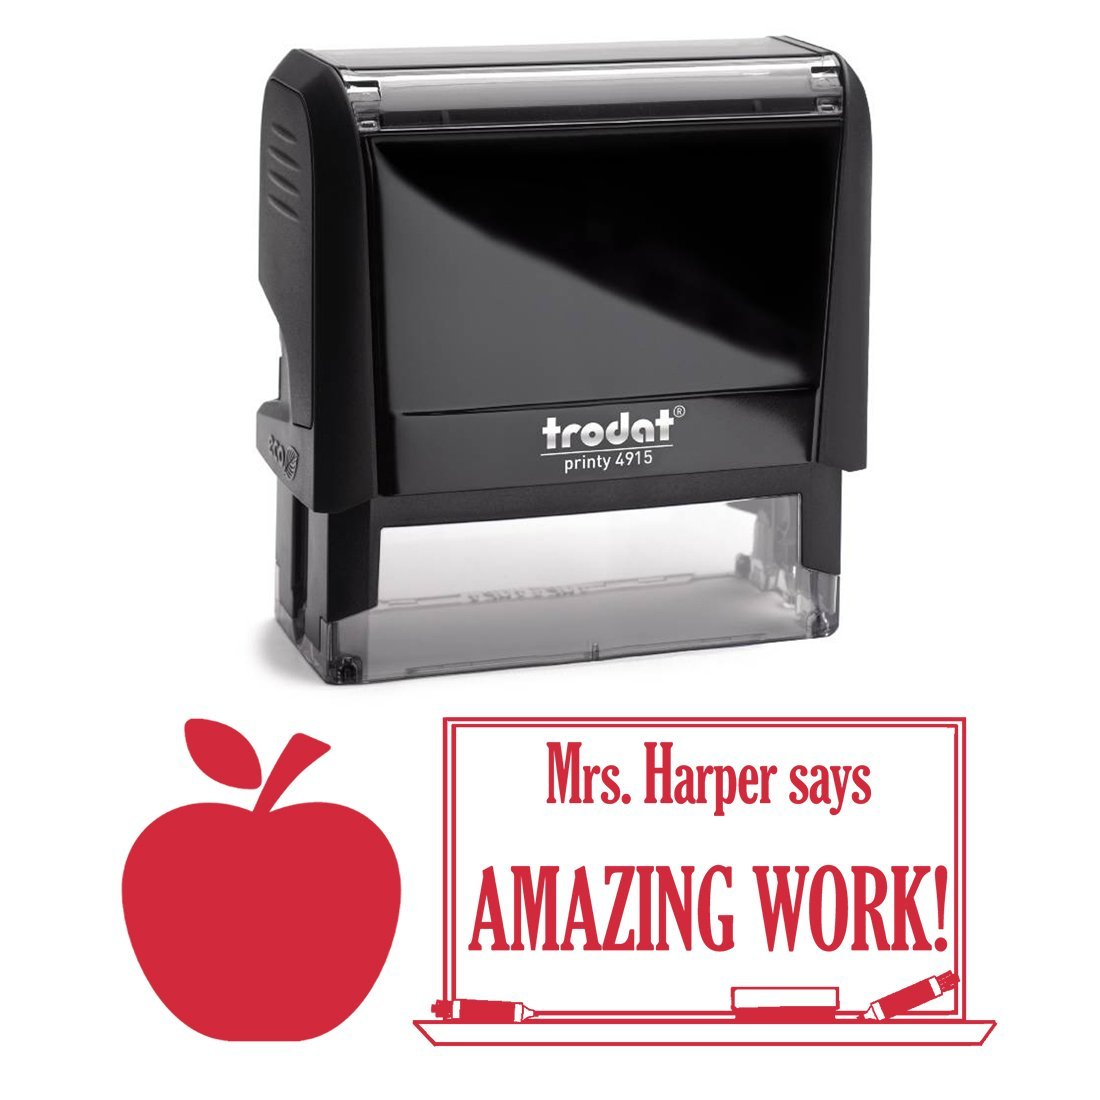 Red Ink, Apple Awesome Job Teacher Stamp, Self Inking, Homework Personalized School Work Stamp, Large 2 Lines, Customized Unique Gift, Personal Classroom Stamper